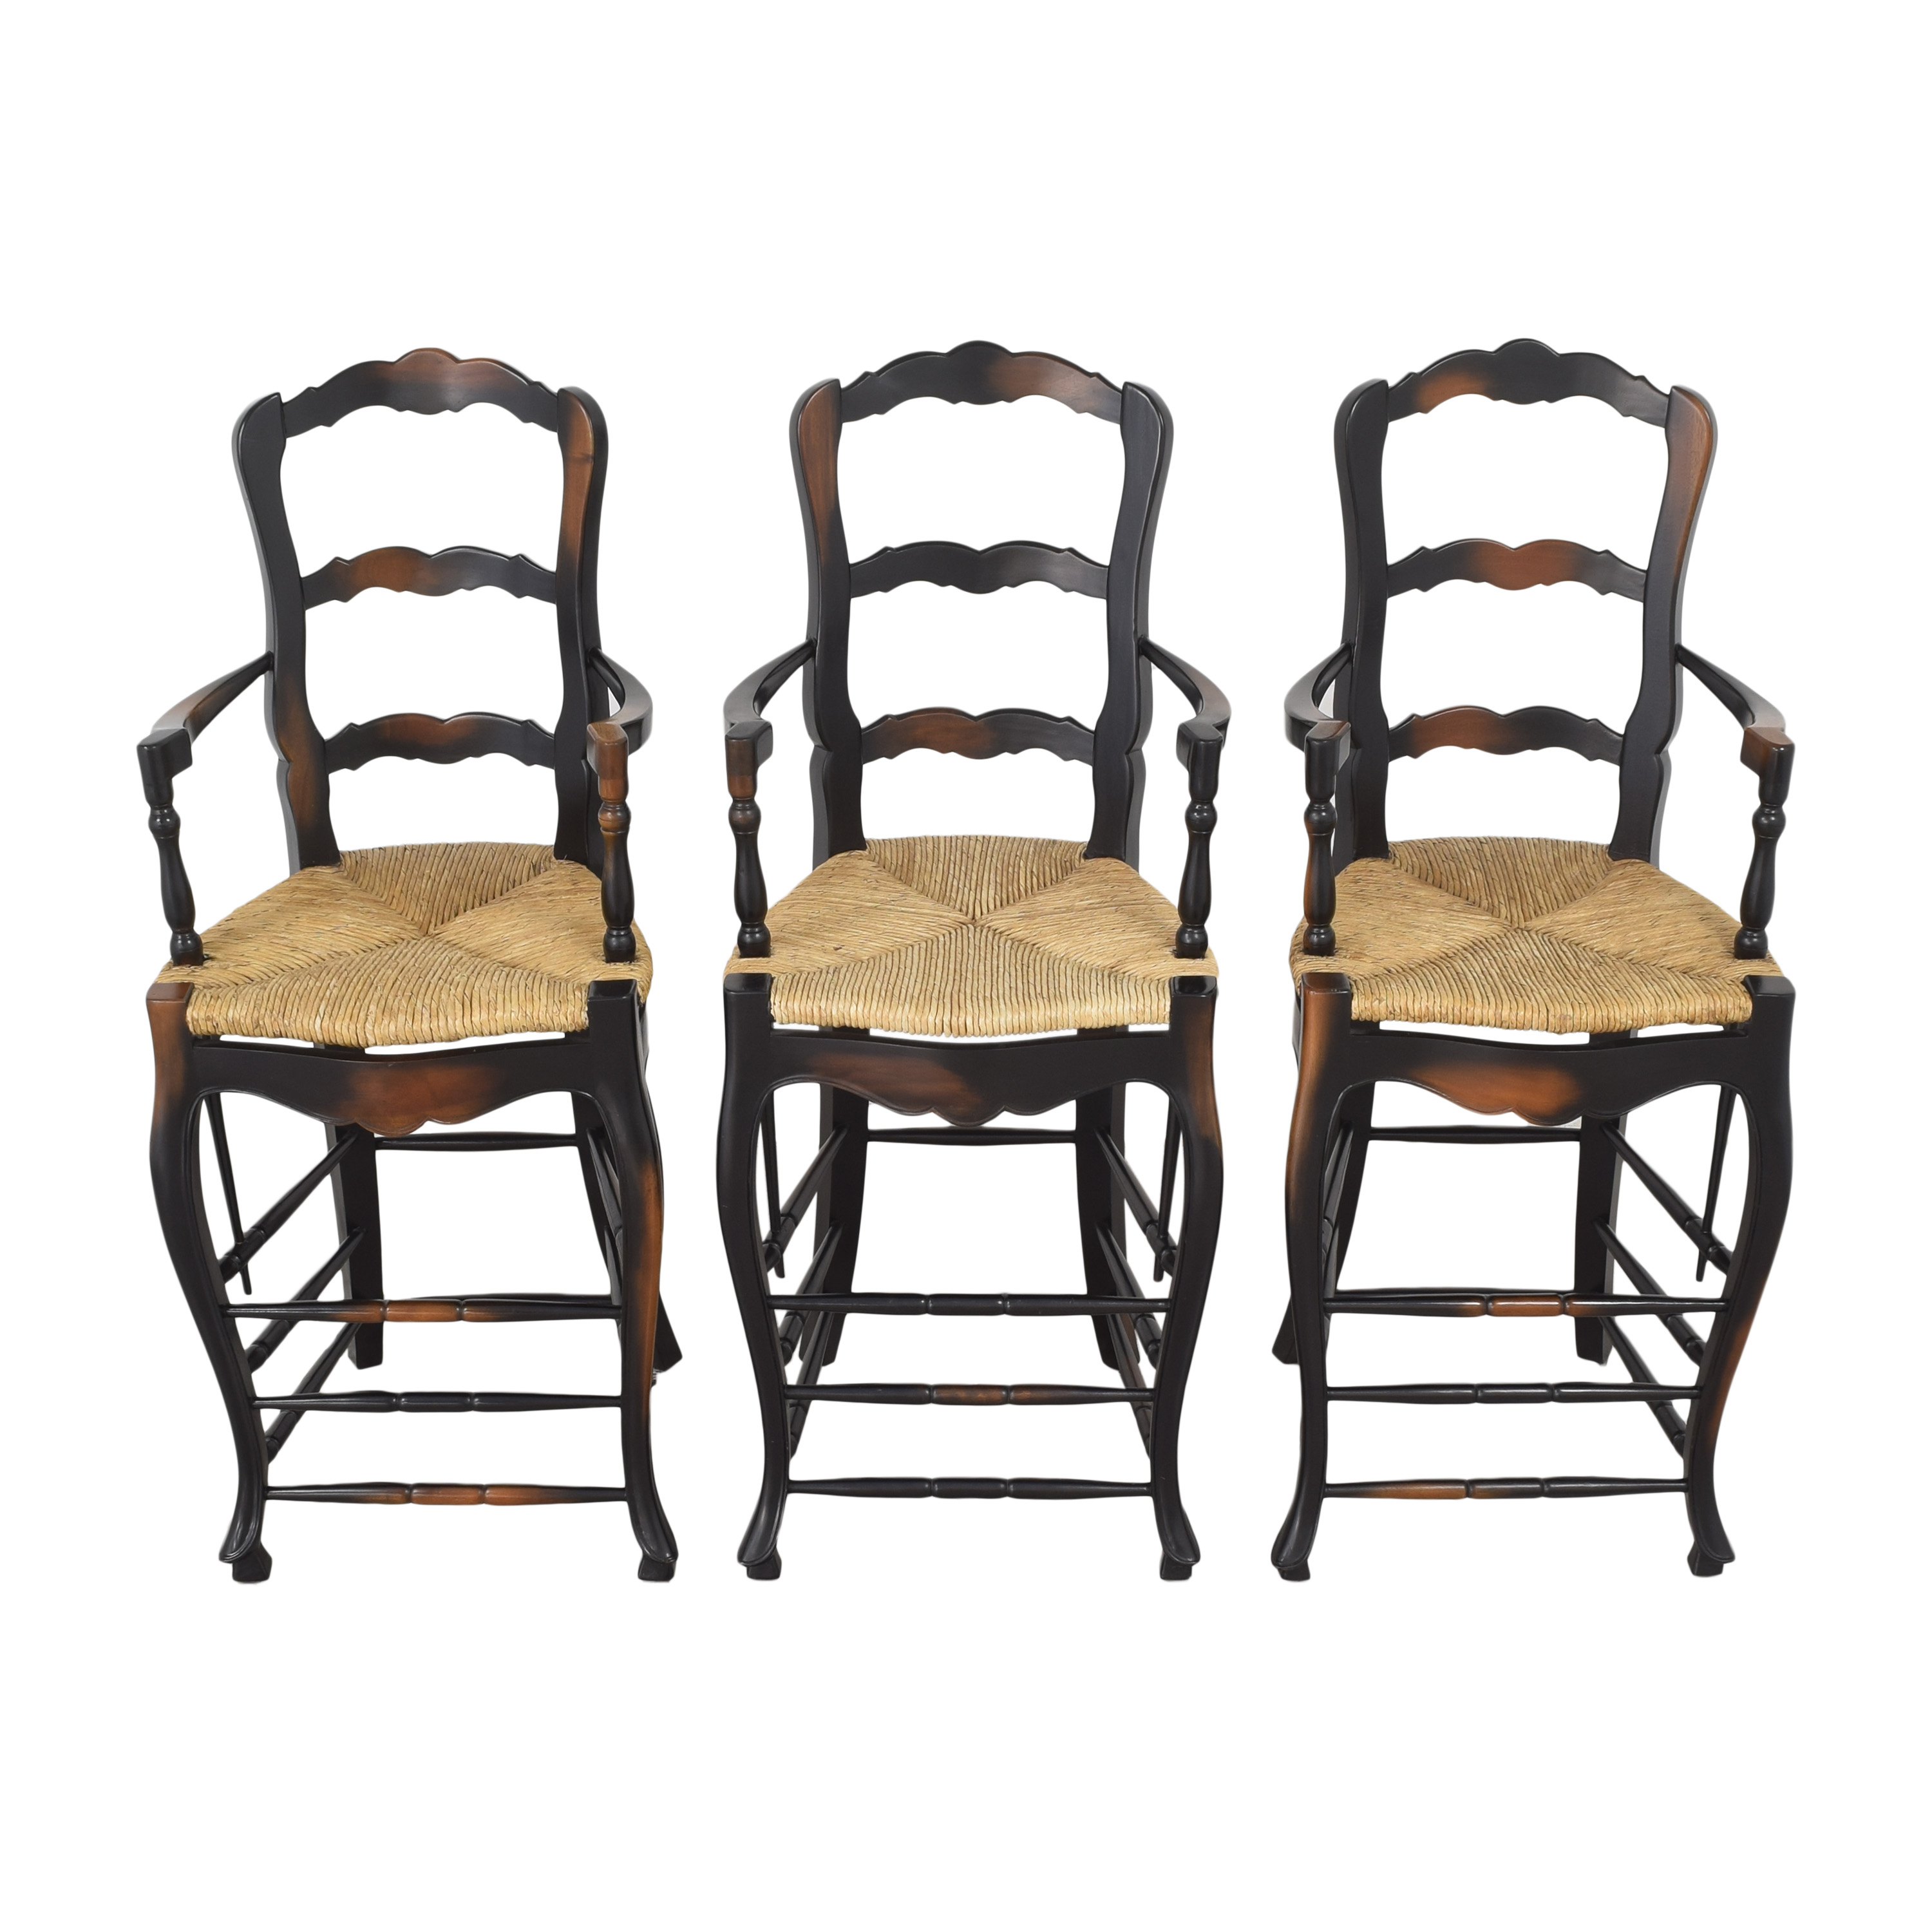 French Country Ladderback Stools black and brown